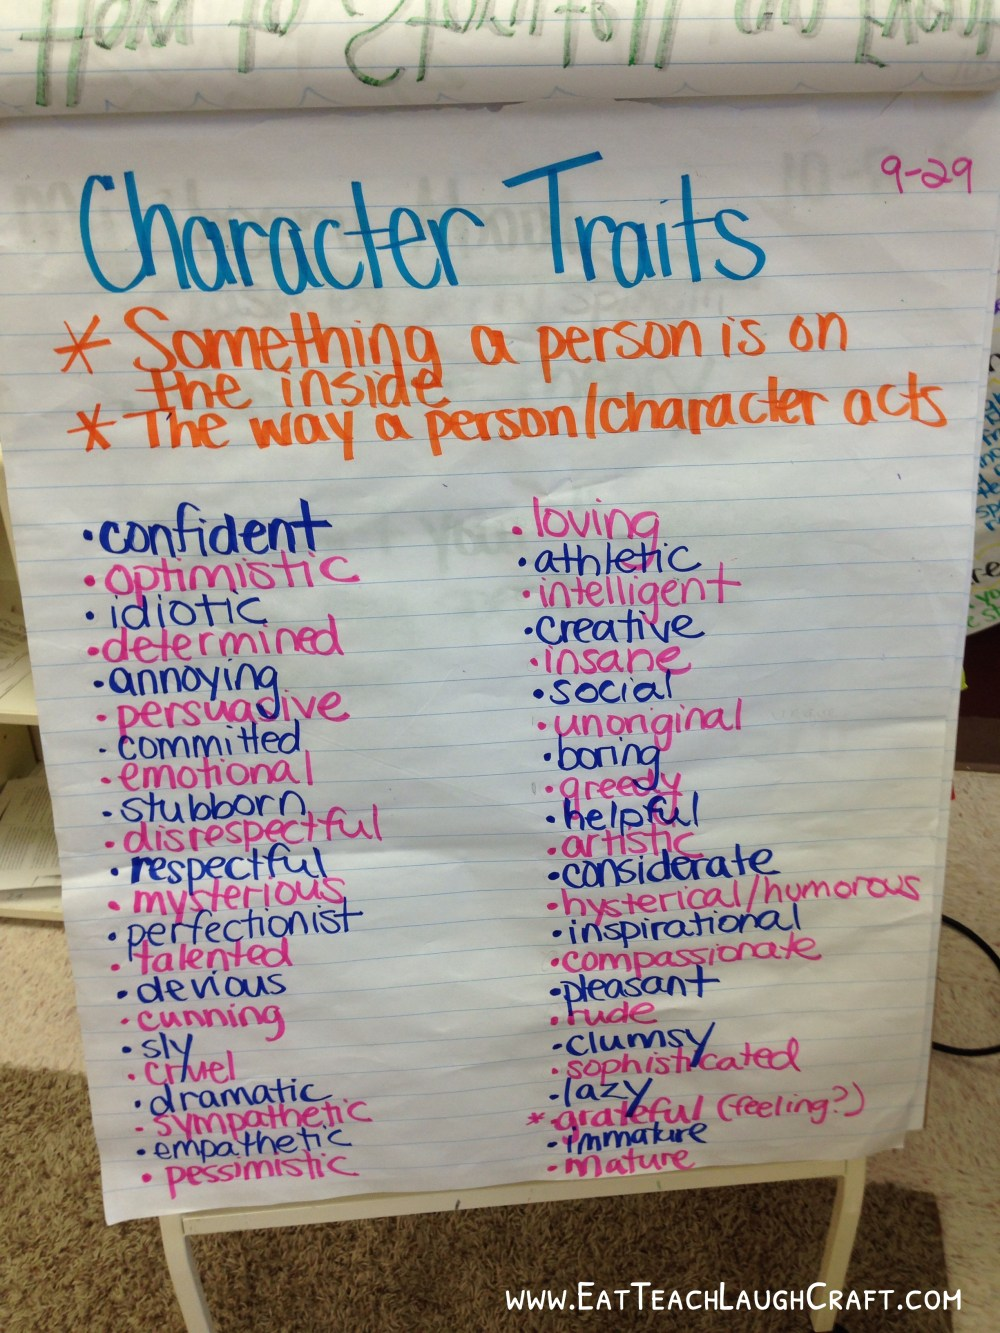 medium resolution of Categorizing Character Traits in a 5th Grade Class - Eat Teach Laugh Craft